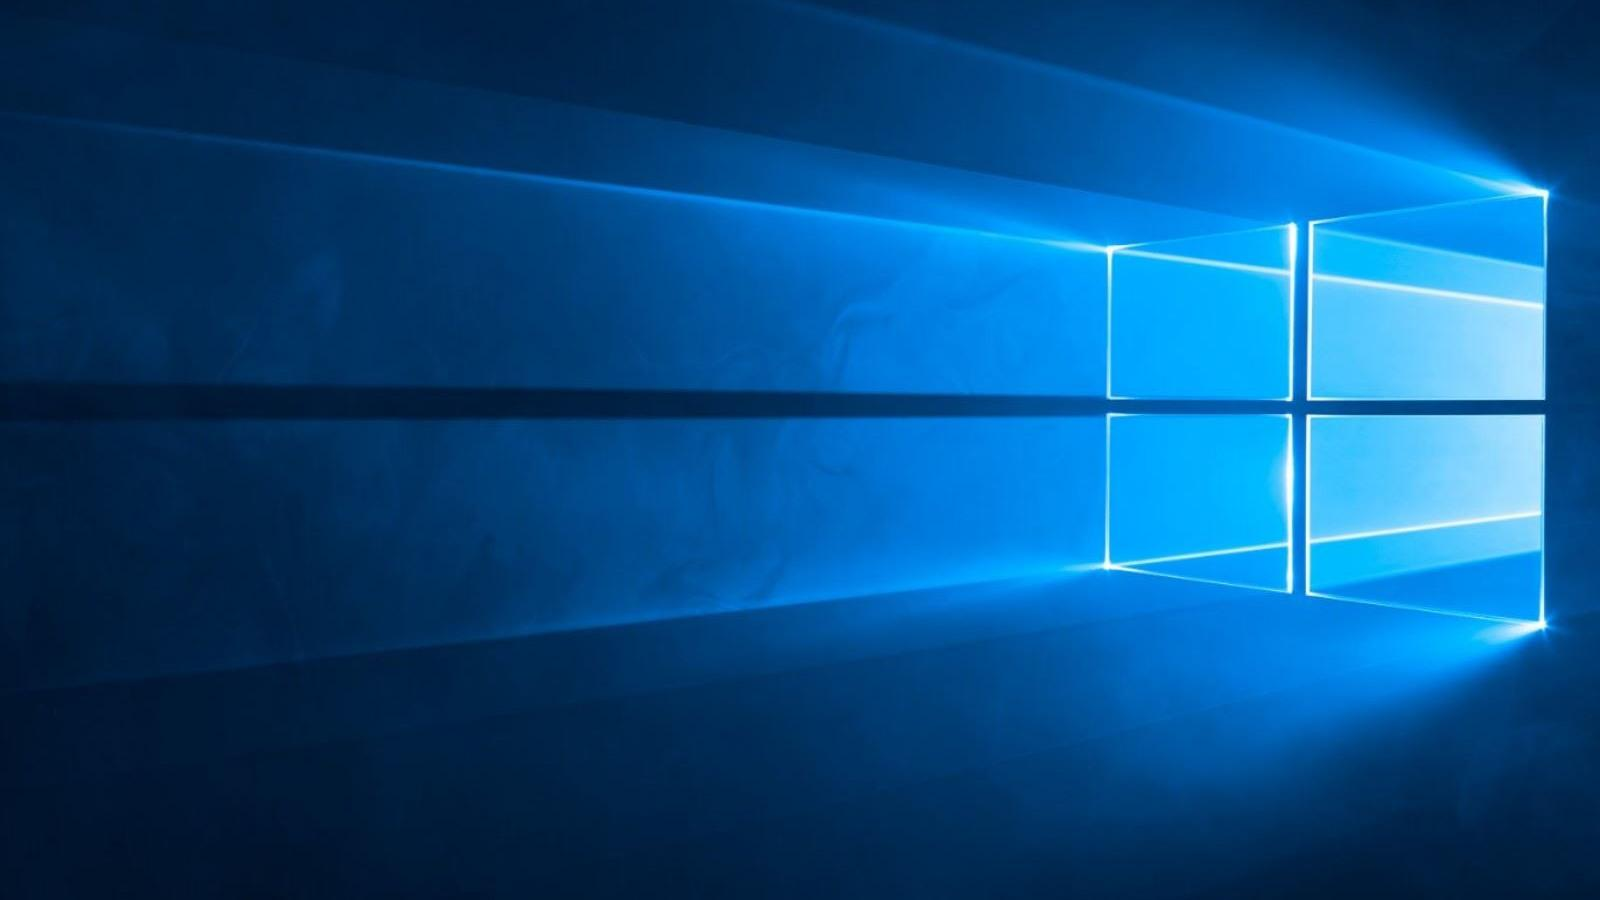 Windows 10 Hero: So entstand das neue Windows-Wallpaper